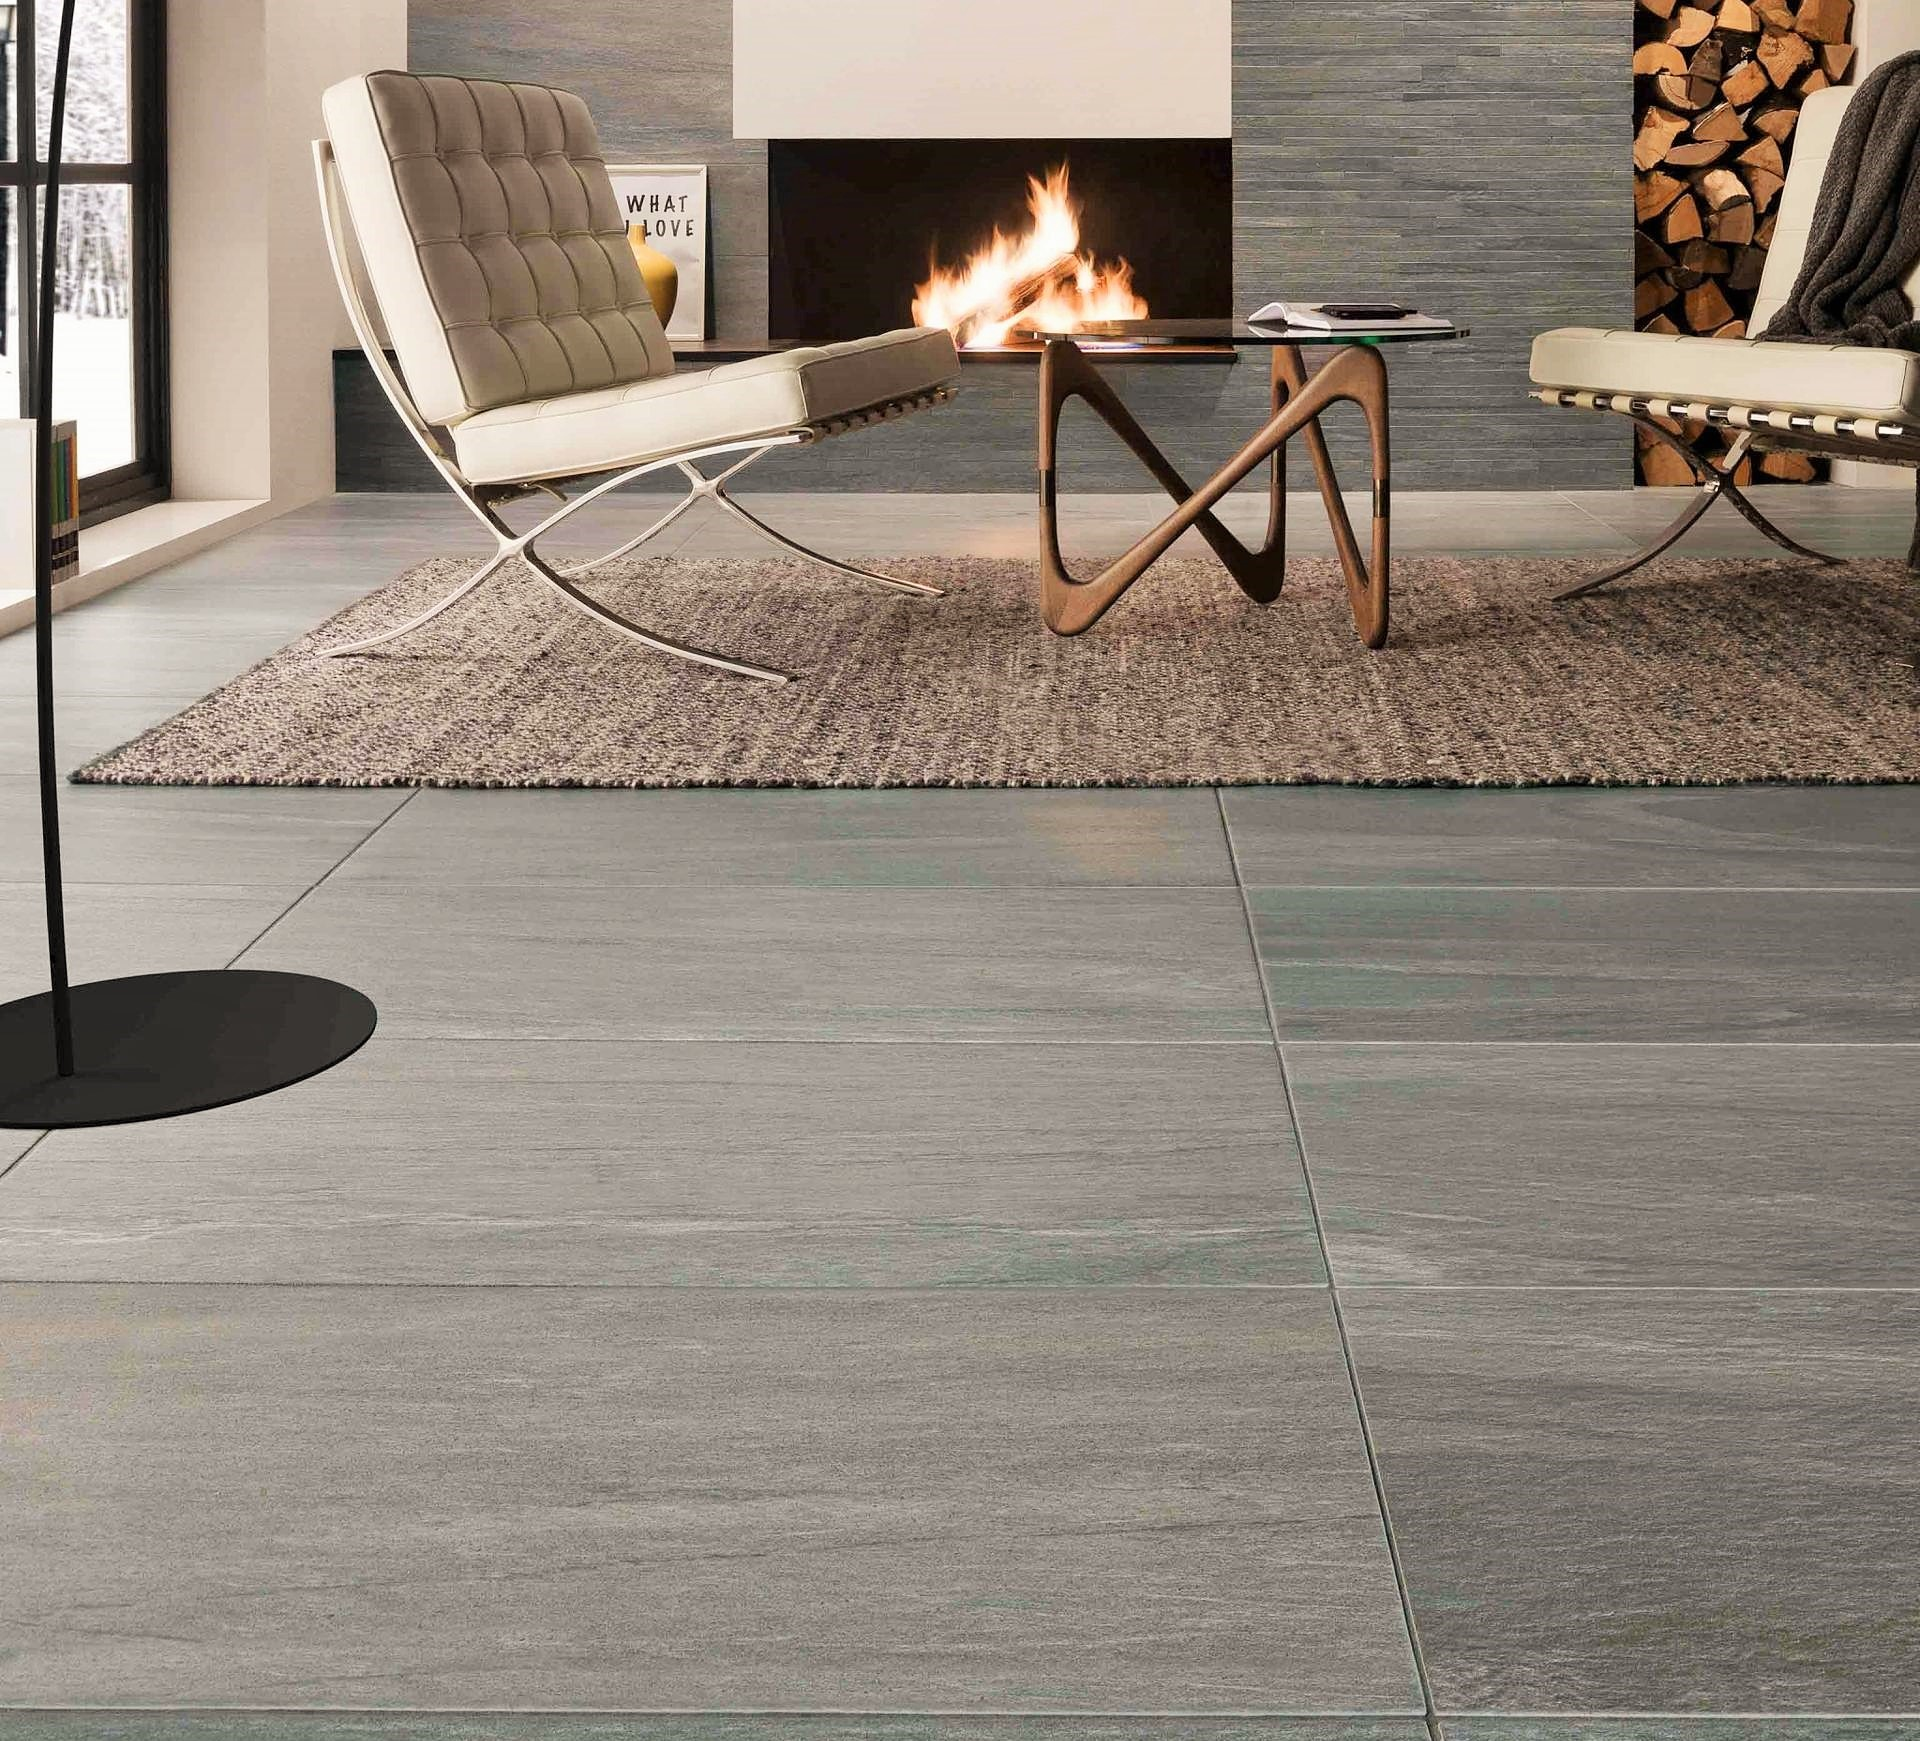 Hereford Ceramic Tiles Independent Retailer Of Quality Ceramic Tiles